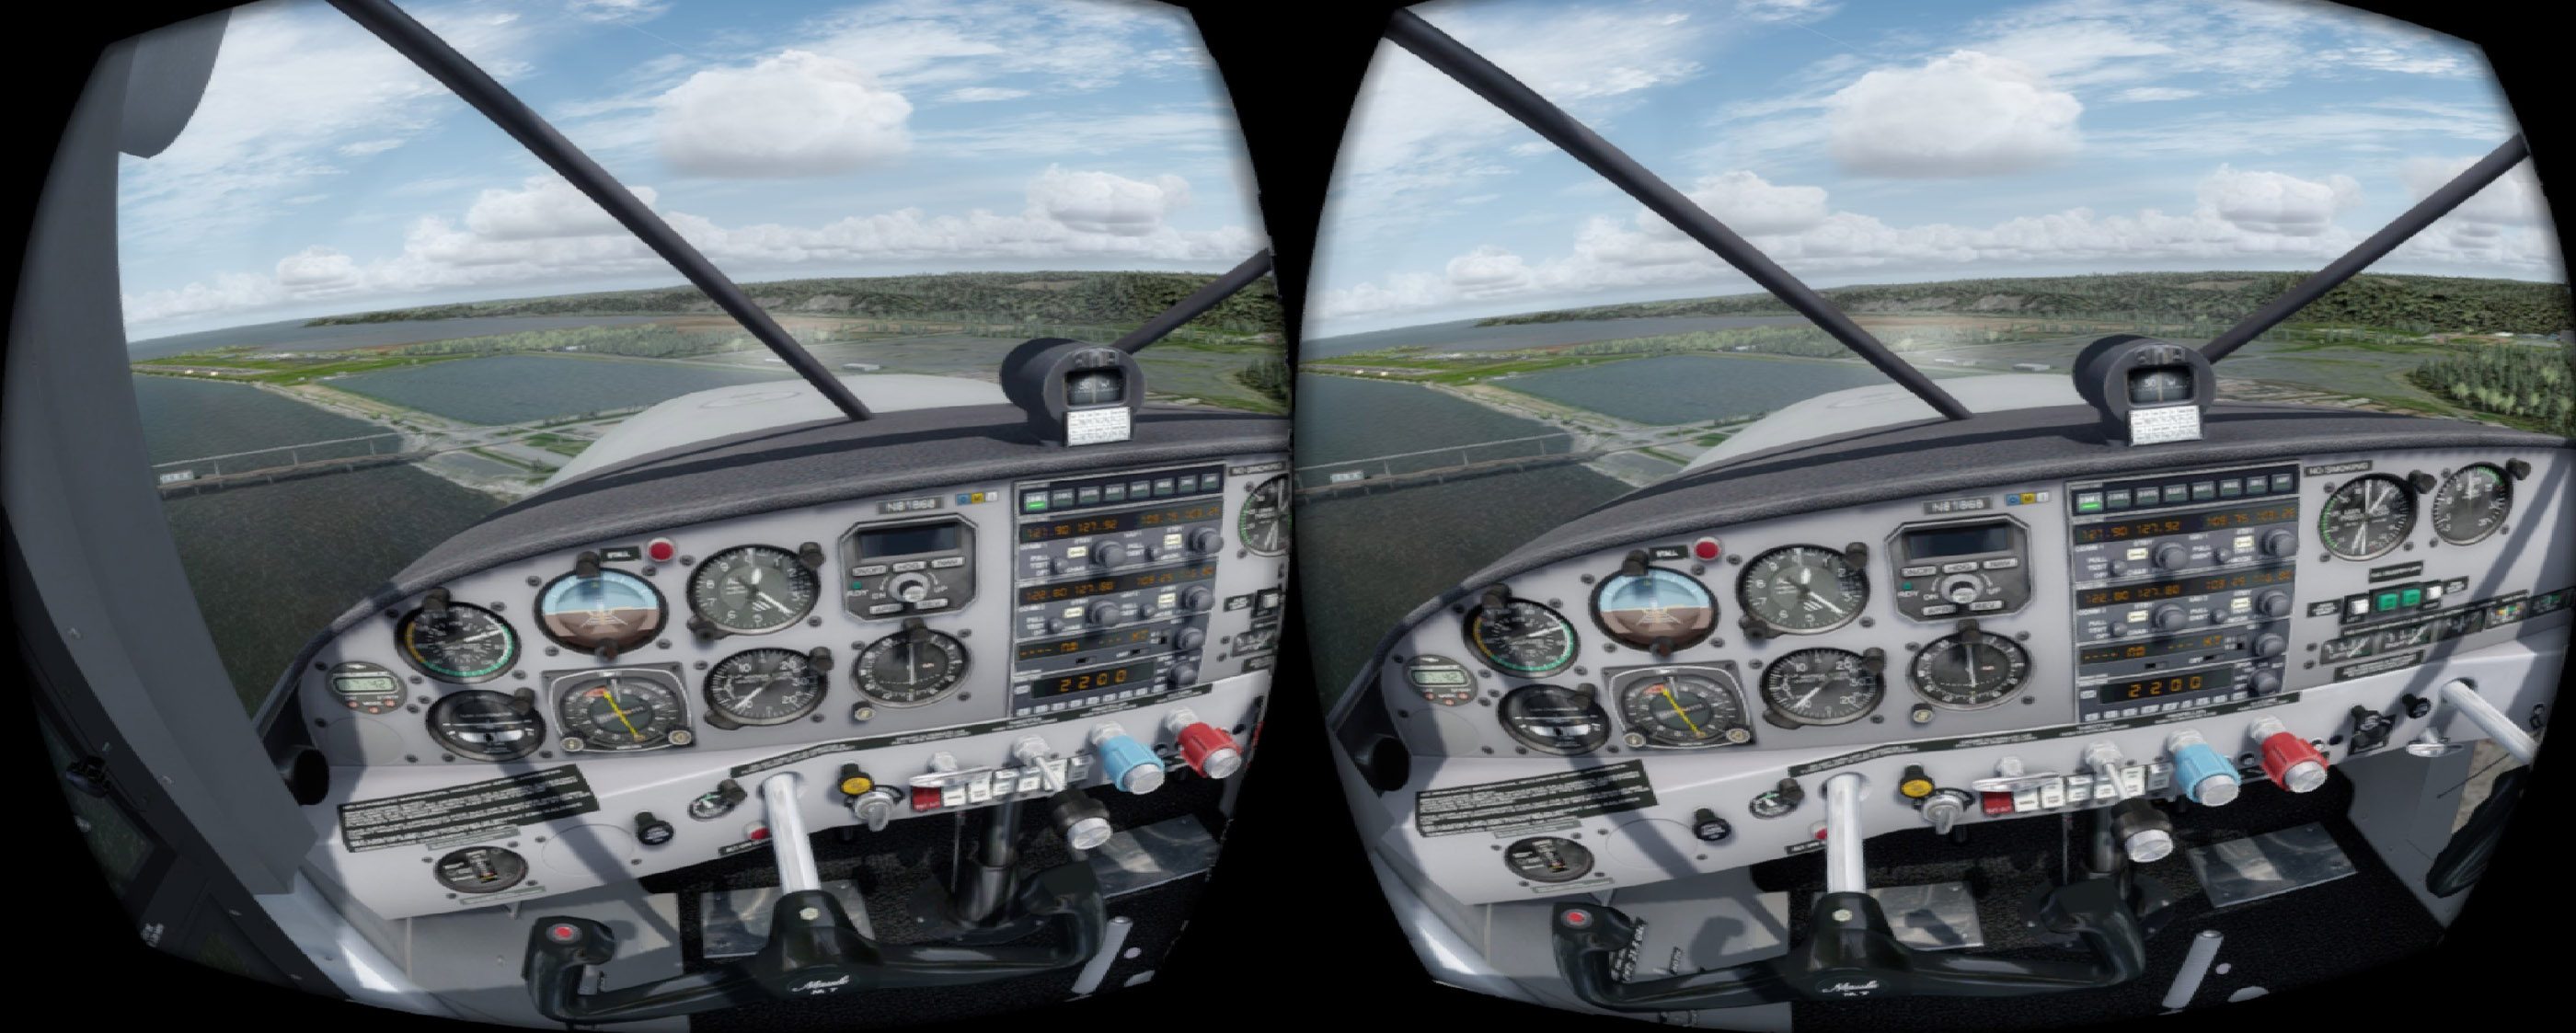 VR in P3D v4 3 is getting good    - Flight Sims - Mudspike